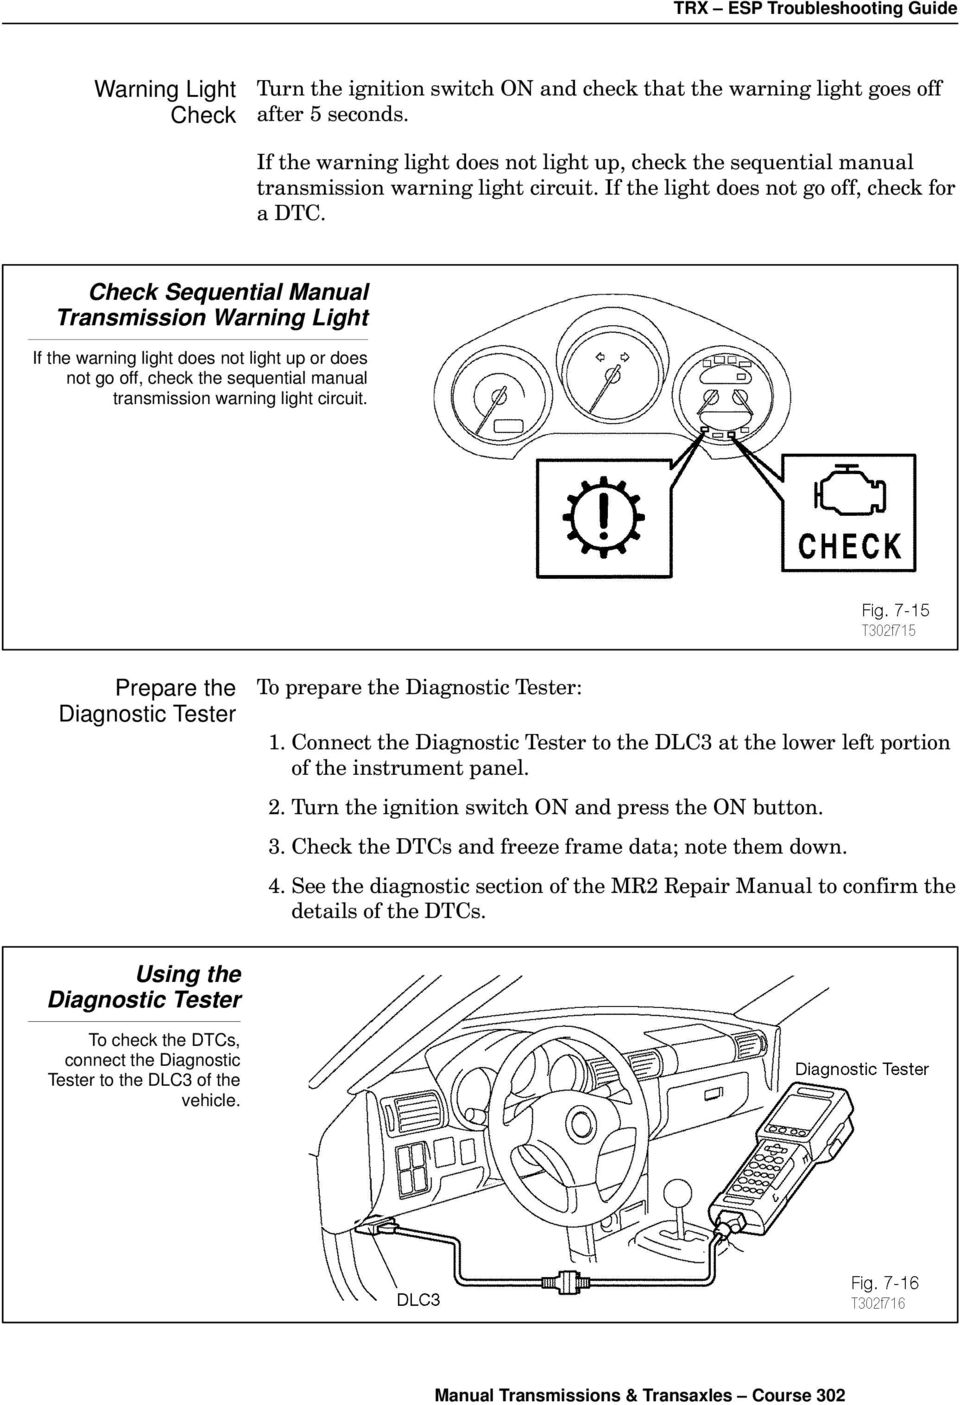 Toyota Sienna Service Manual: Vehicle Speed Signal Circuit between Multi-display and CombinationMeter